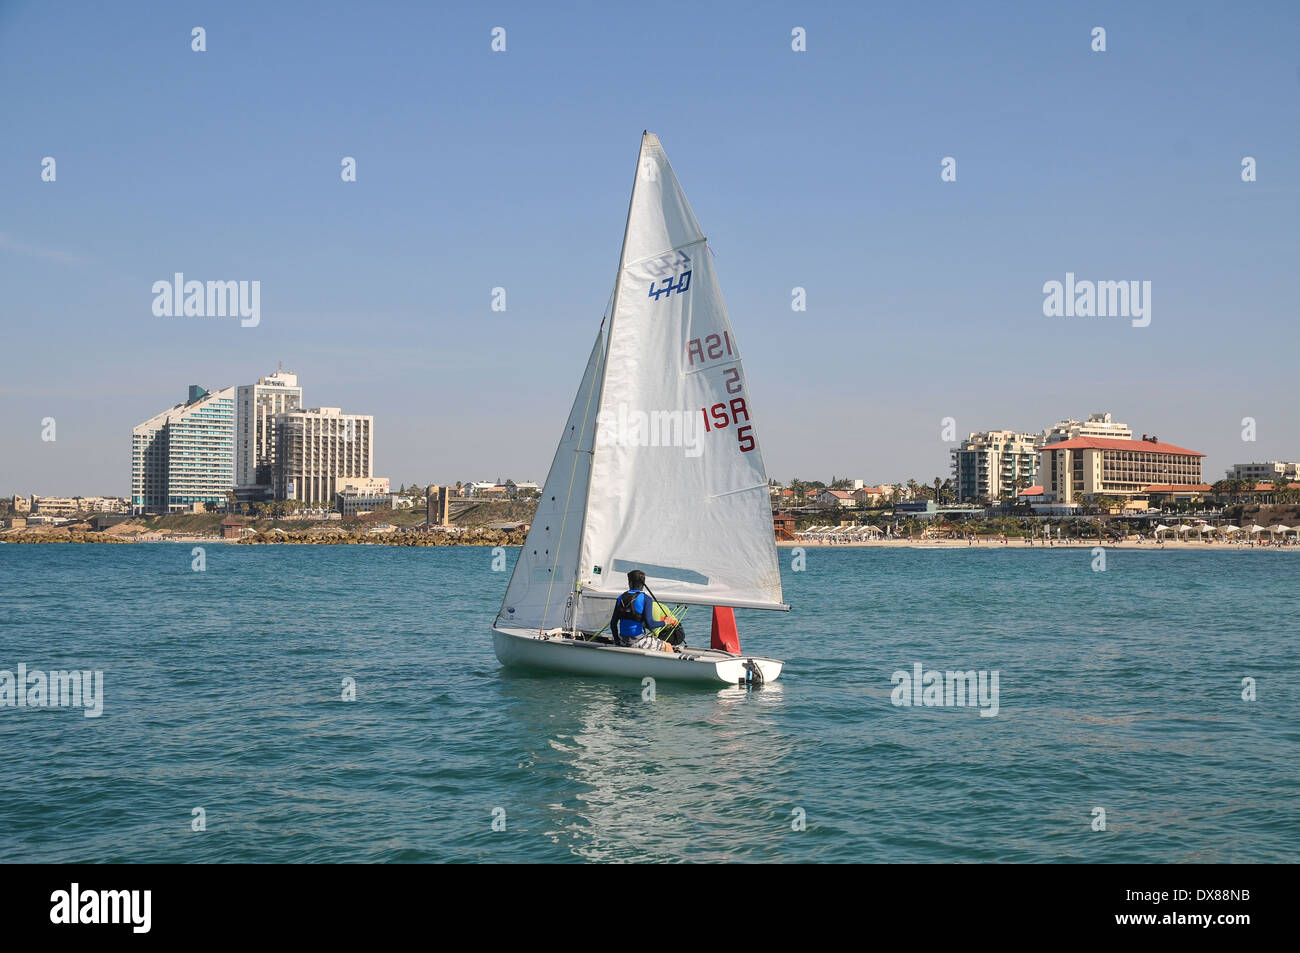 Sail boat in the Mediterranean Sea. Photographed in Israel, Herzlya - Stock Image